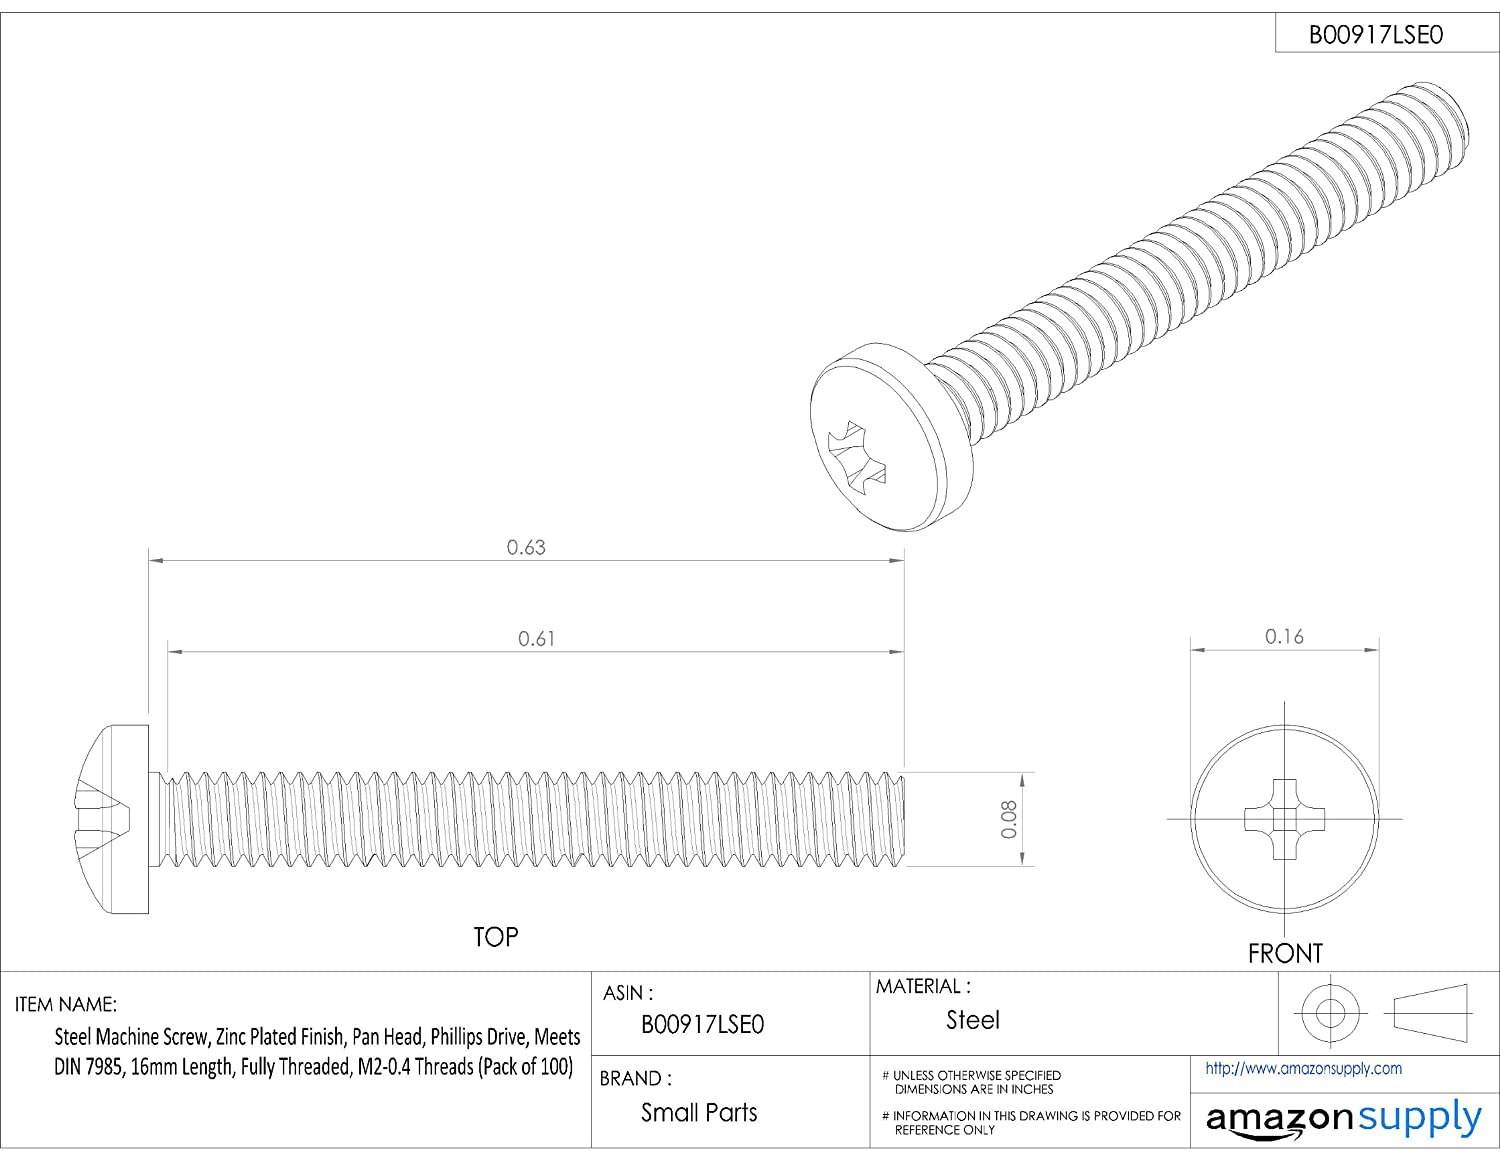 Phillips Drive M6-1 Metric Coarse Threads Small Parts 75mm Length Zinc Plated Finish Pack of 10 Steel Machine Screw Fully Threaded Meets DIN 7985 Pan Head